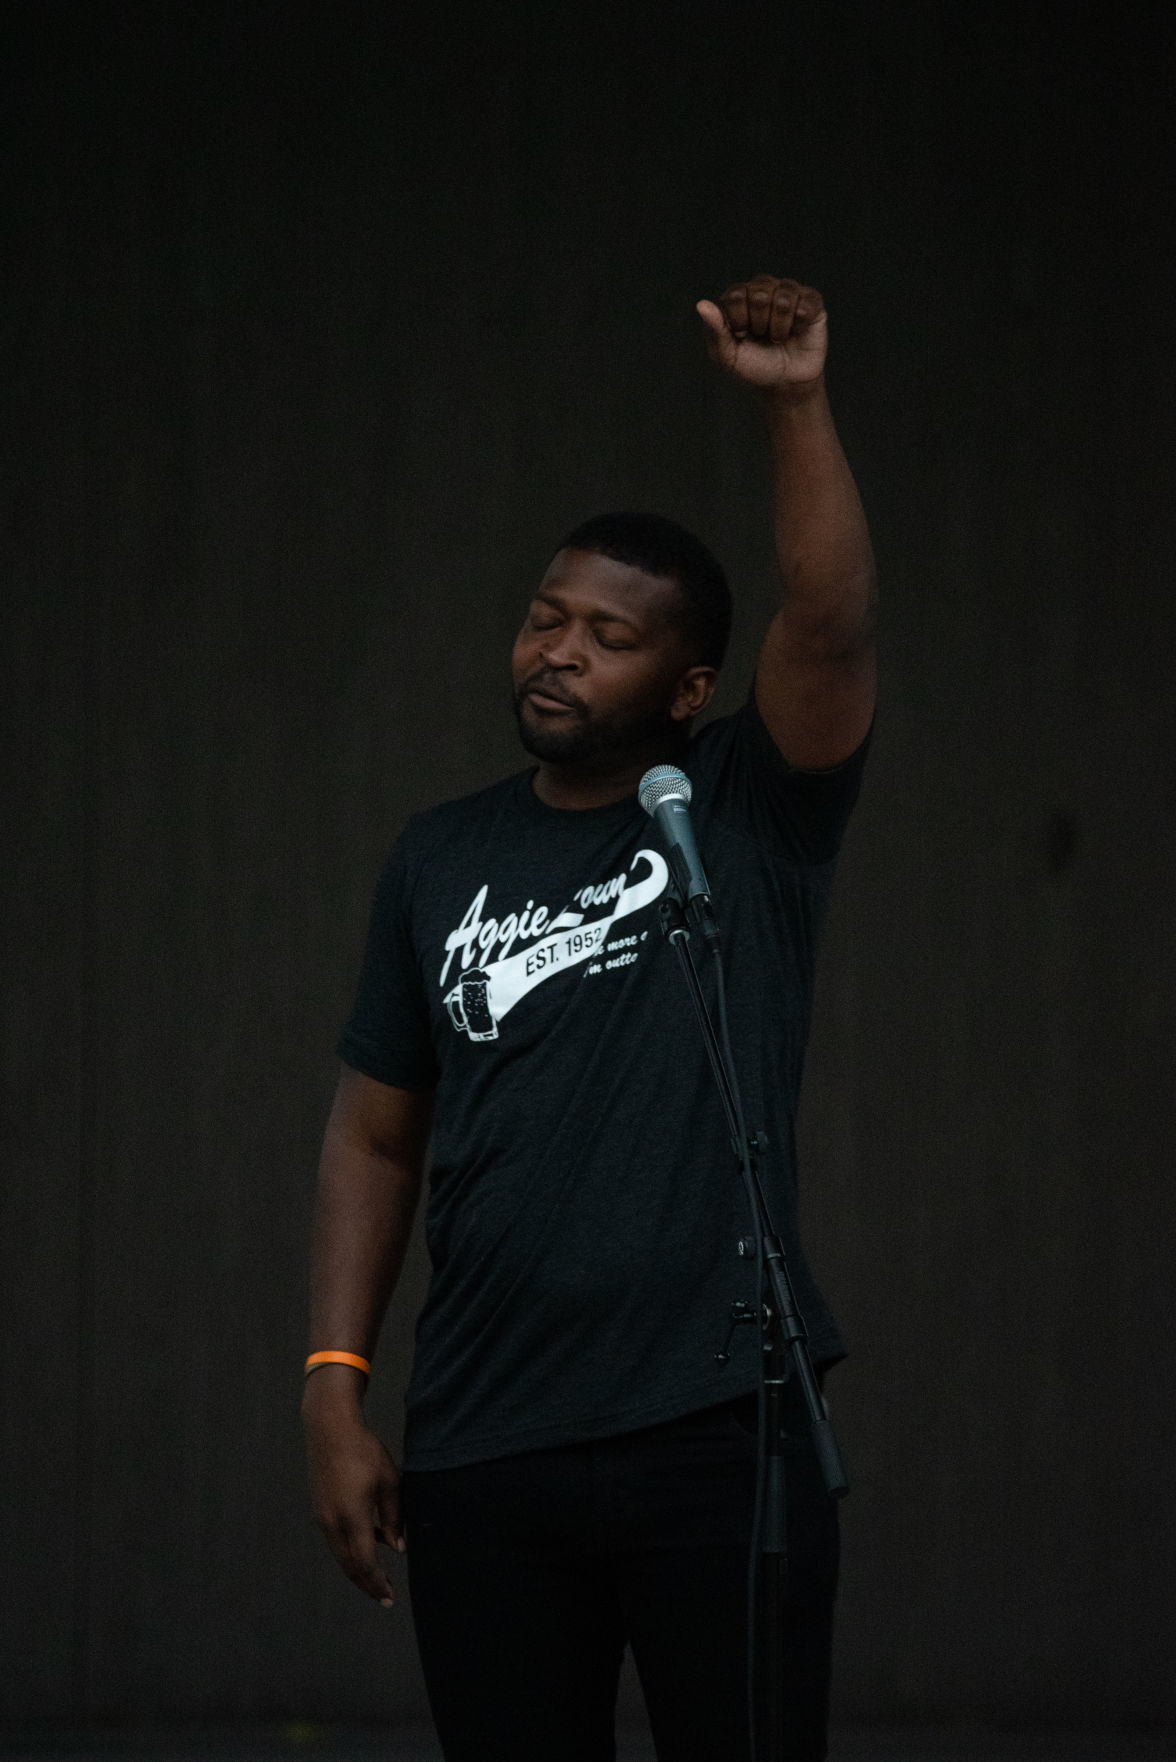 Tory Harris raises his fist while speaking on stage at Wefald Pavilion in City Park before the Flashlight Vigil on Friday. ÒI tell you she (Jaynae Cole) played the song Glory and I donÕt know if your fist was up. How many peopleÕs fist was up? ThatÕs a five minute song, in around two minutes and thirty seconds seconds, what did you feel in that arm?Ó asked Harris. ÒWhatever you felt in that arm, for two minutes and thirty seconds, it was a five minute song and in my head I told myself Tory keep it up. Keep it up! This is all you gotta do right now is keep this arm up. But it takes a little bit more than thatÉ you have to say enough is enough. You have to have that strength to turn around and say enough is enough. Like Mrs. Teresa said, we can be angry but it wonÕt help win anybodyÕs hearts,Ó he added.